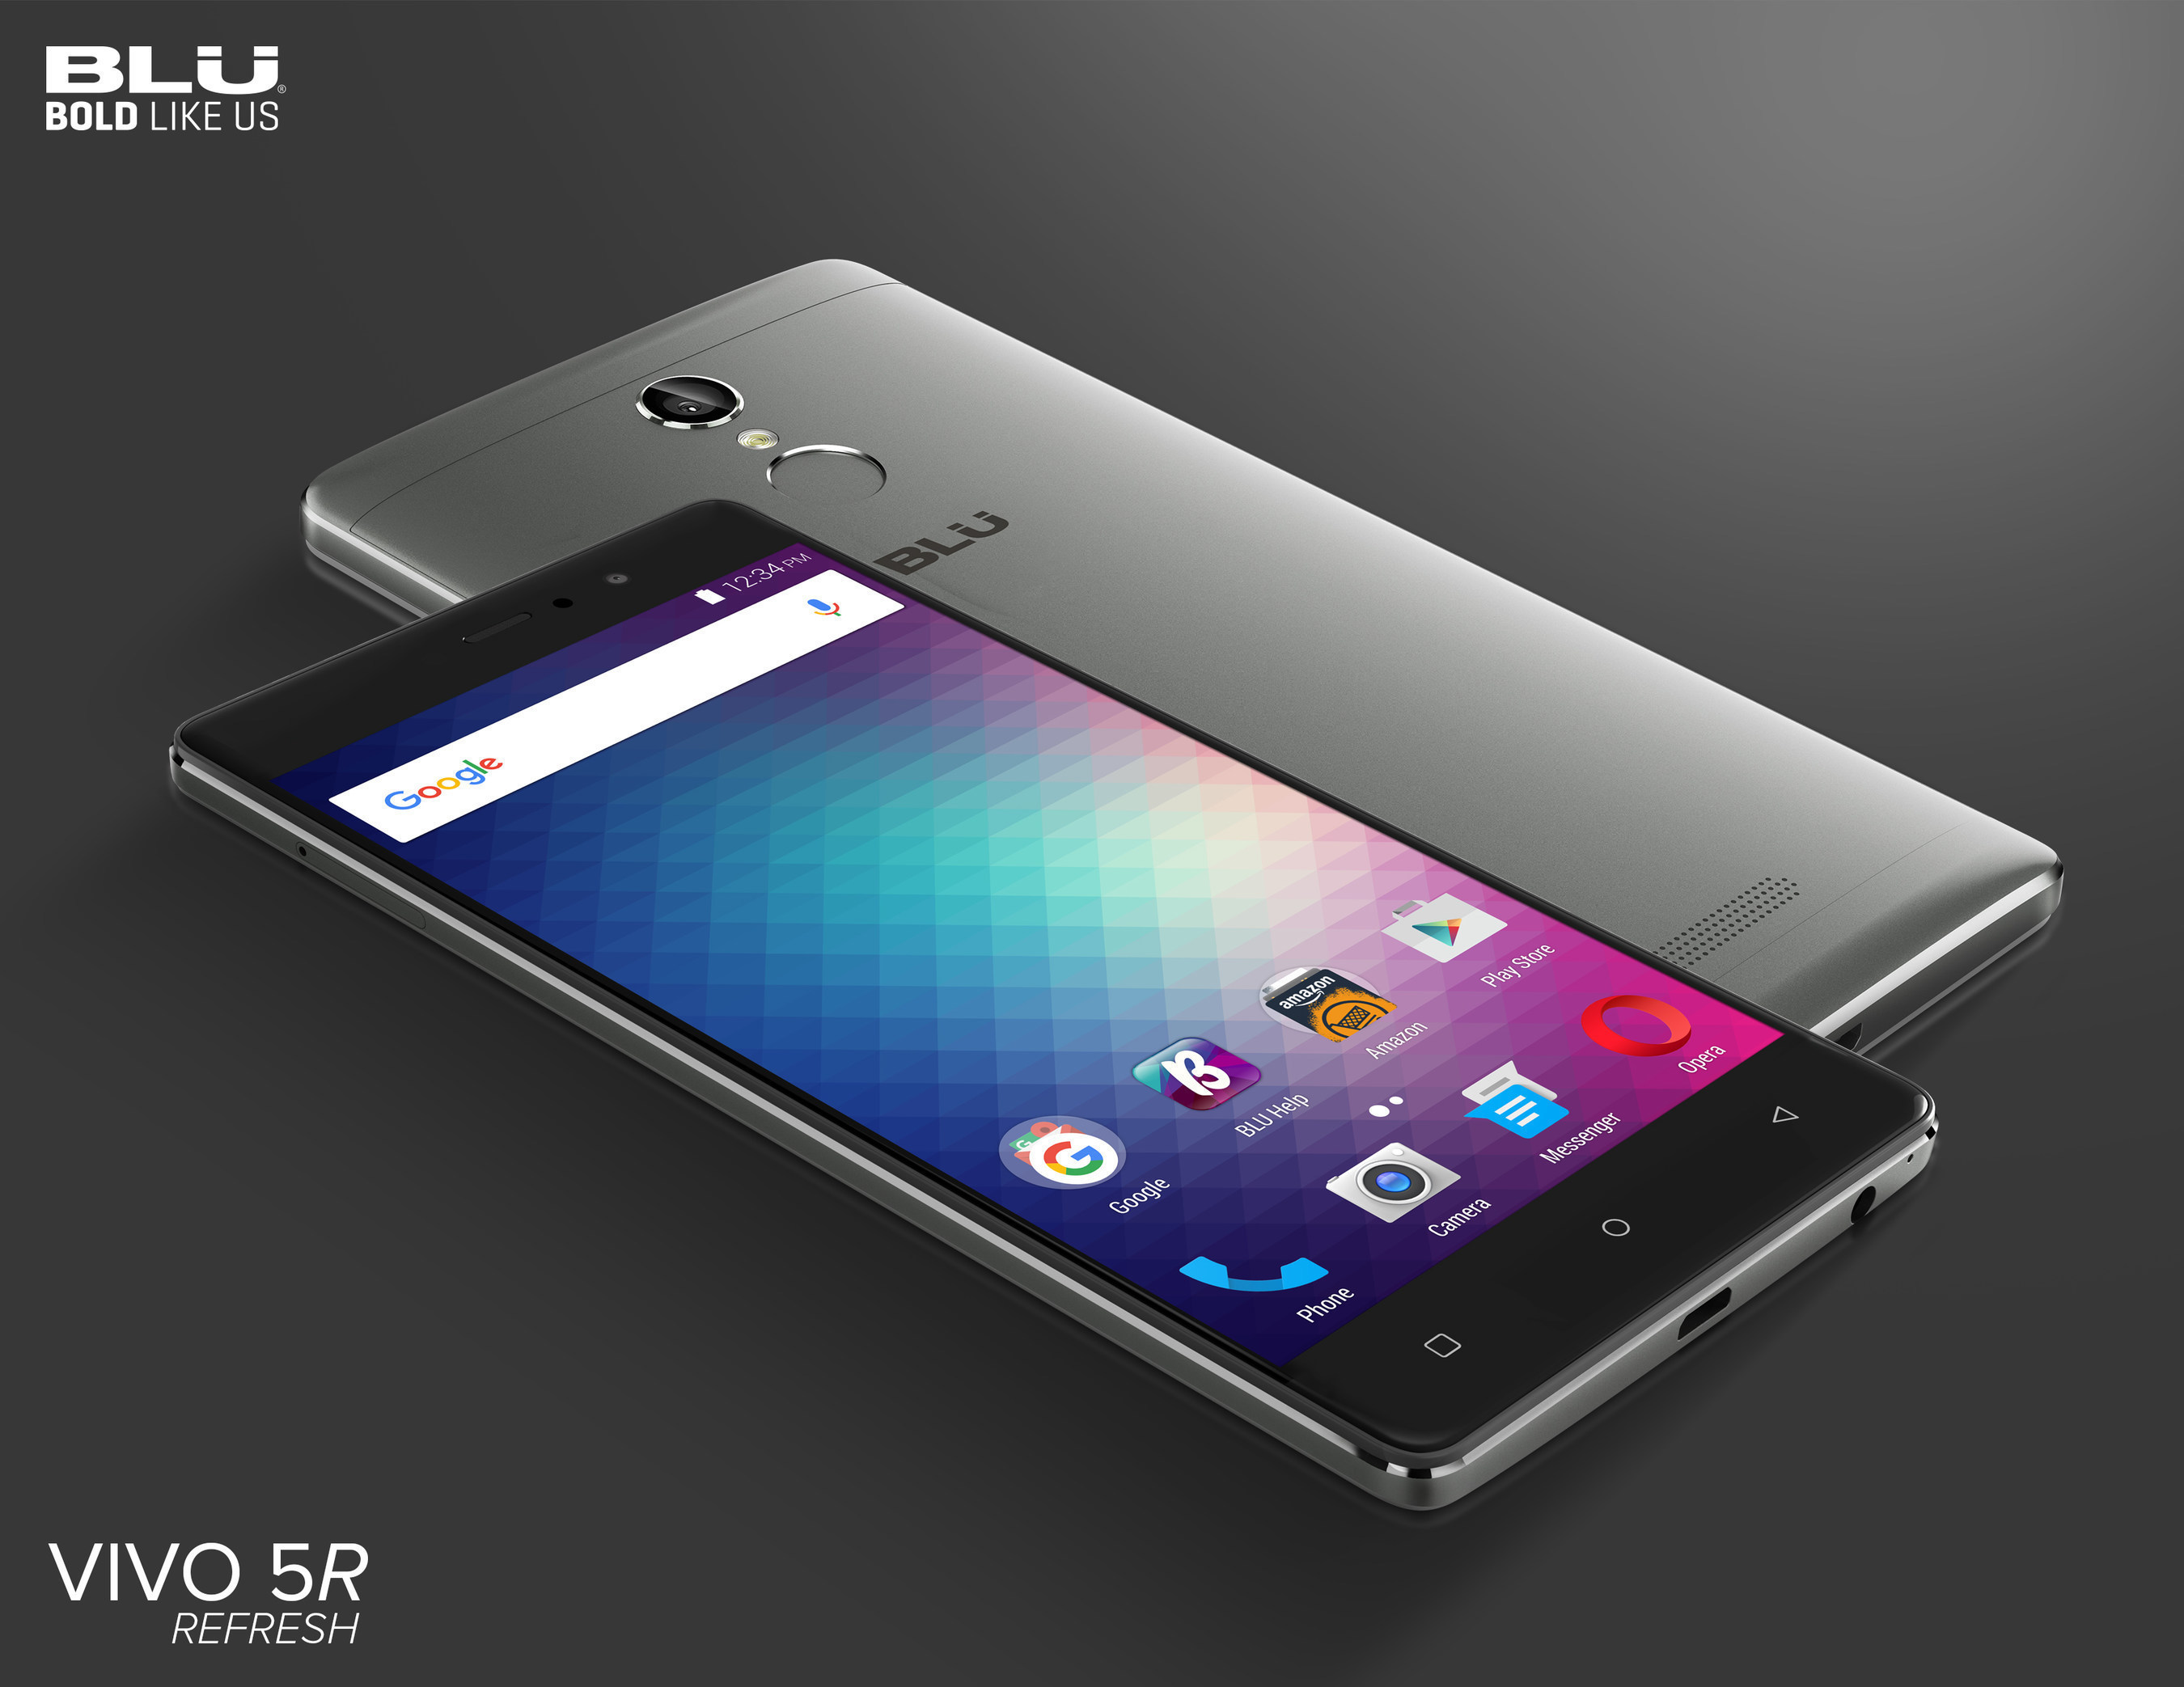 BLU Products Releases Refreshed Version of the Popular Vivo 5 with the New BLU Vivo 5R; to launch at Best Buy Stores, now available on Bestbuy.com